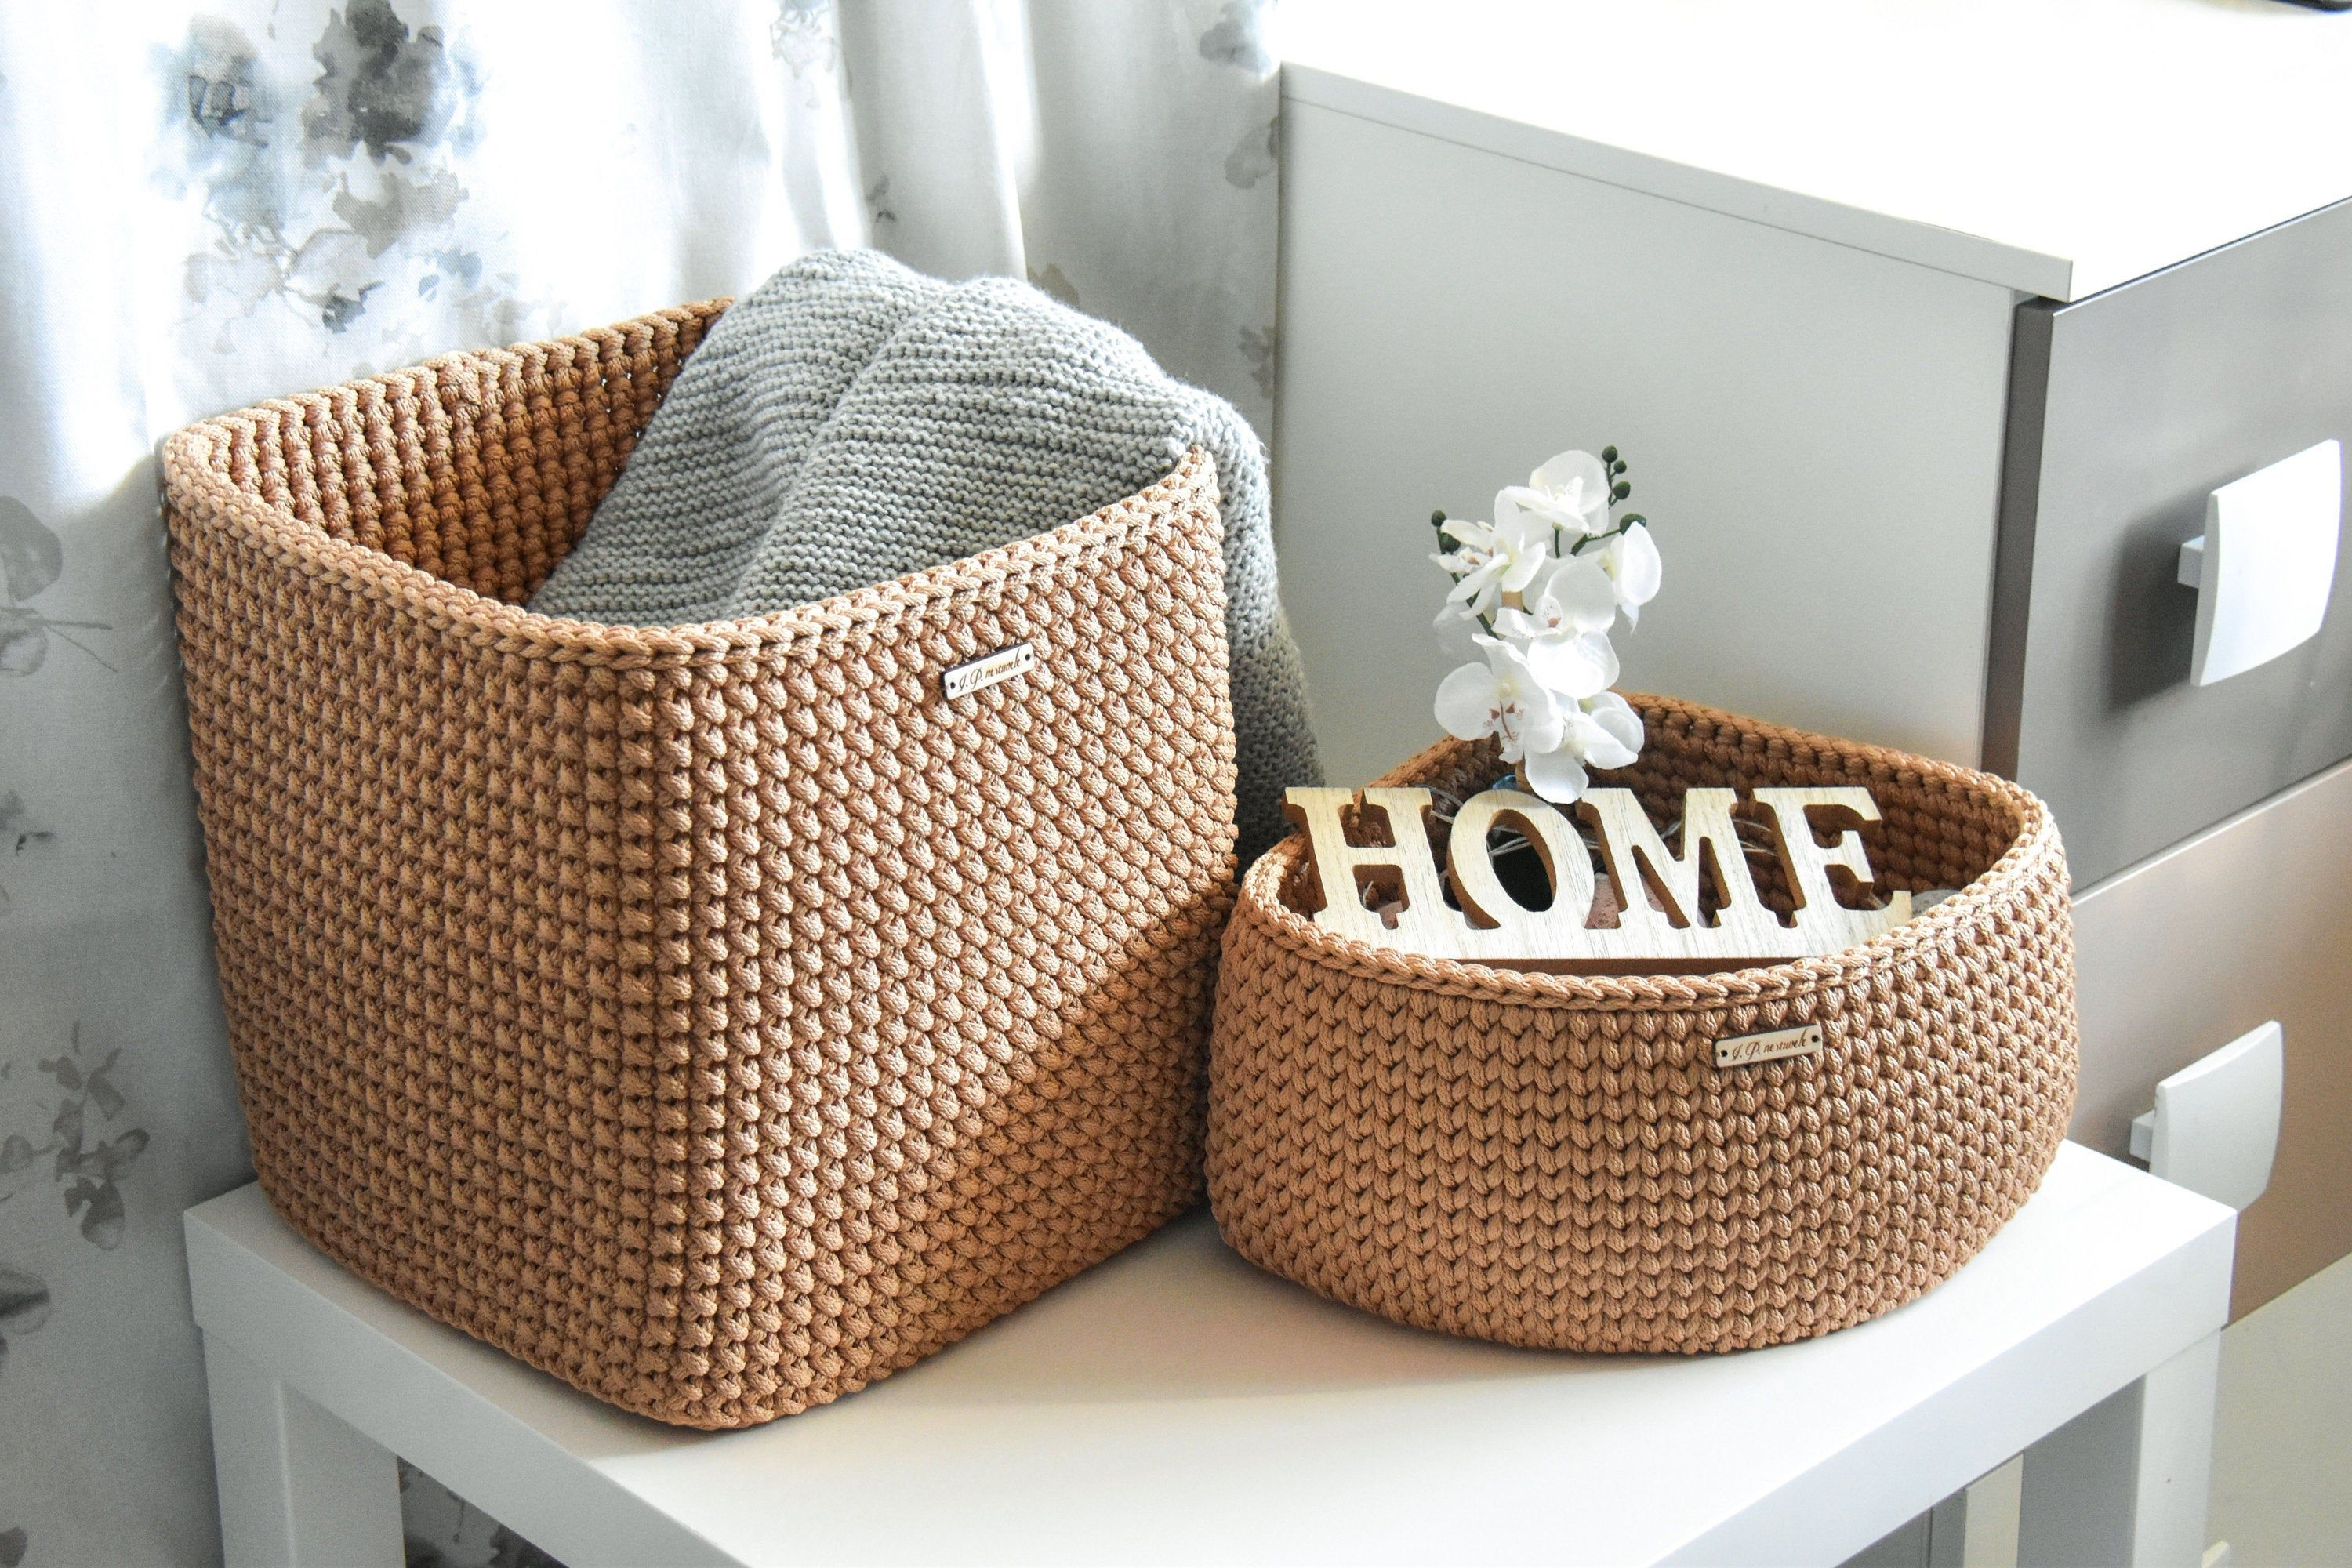 Triangle Shaped Basket Corner Storage Triangular Shape Hand Woven Basket Triangle Storage Beige Basket Rope Basket In 2020 Corner Storage Crochet Basket Wicker Laundry Basket